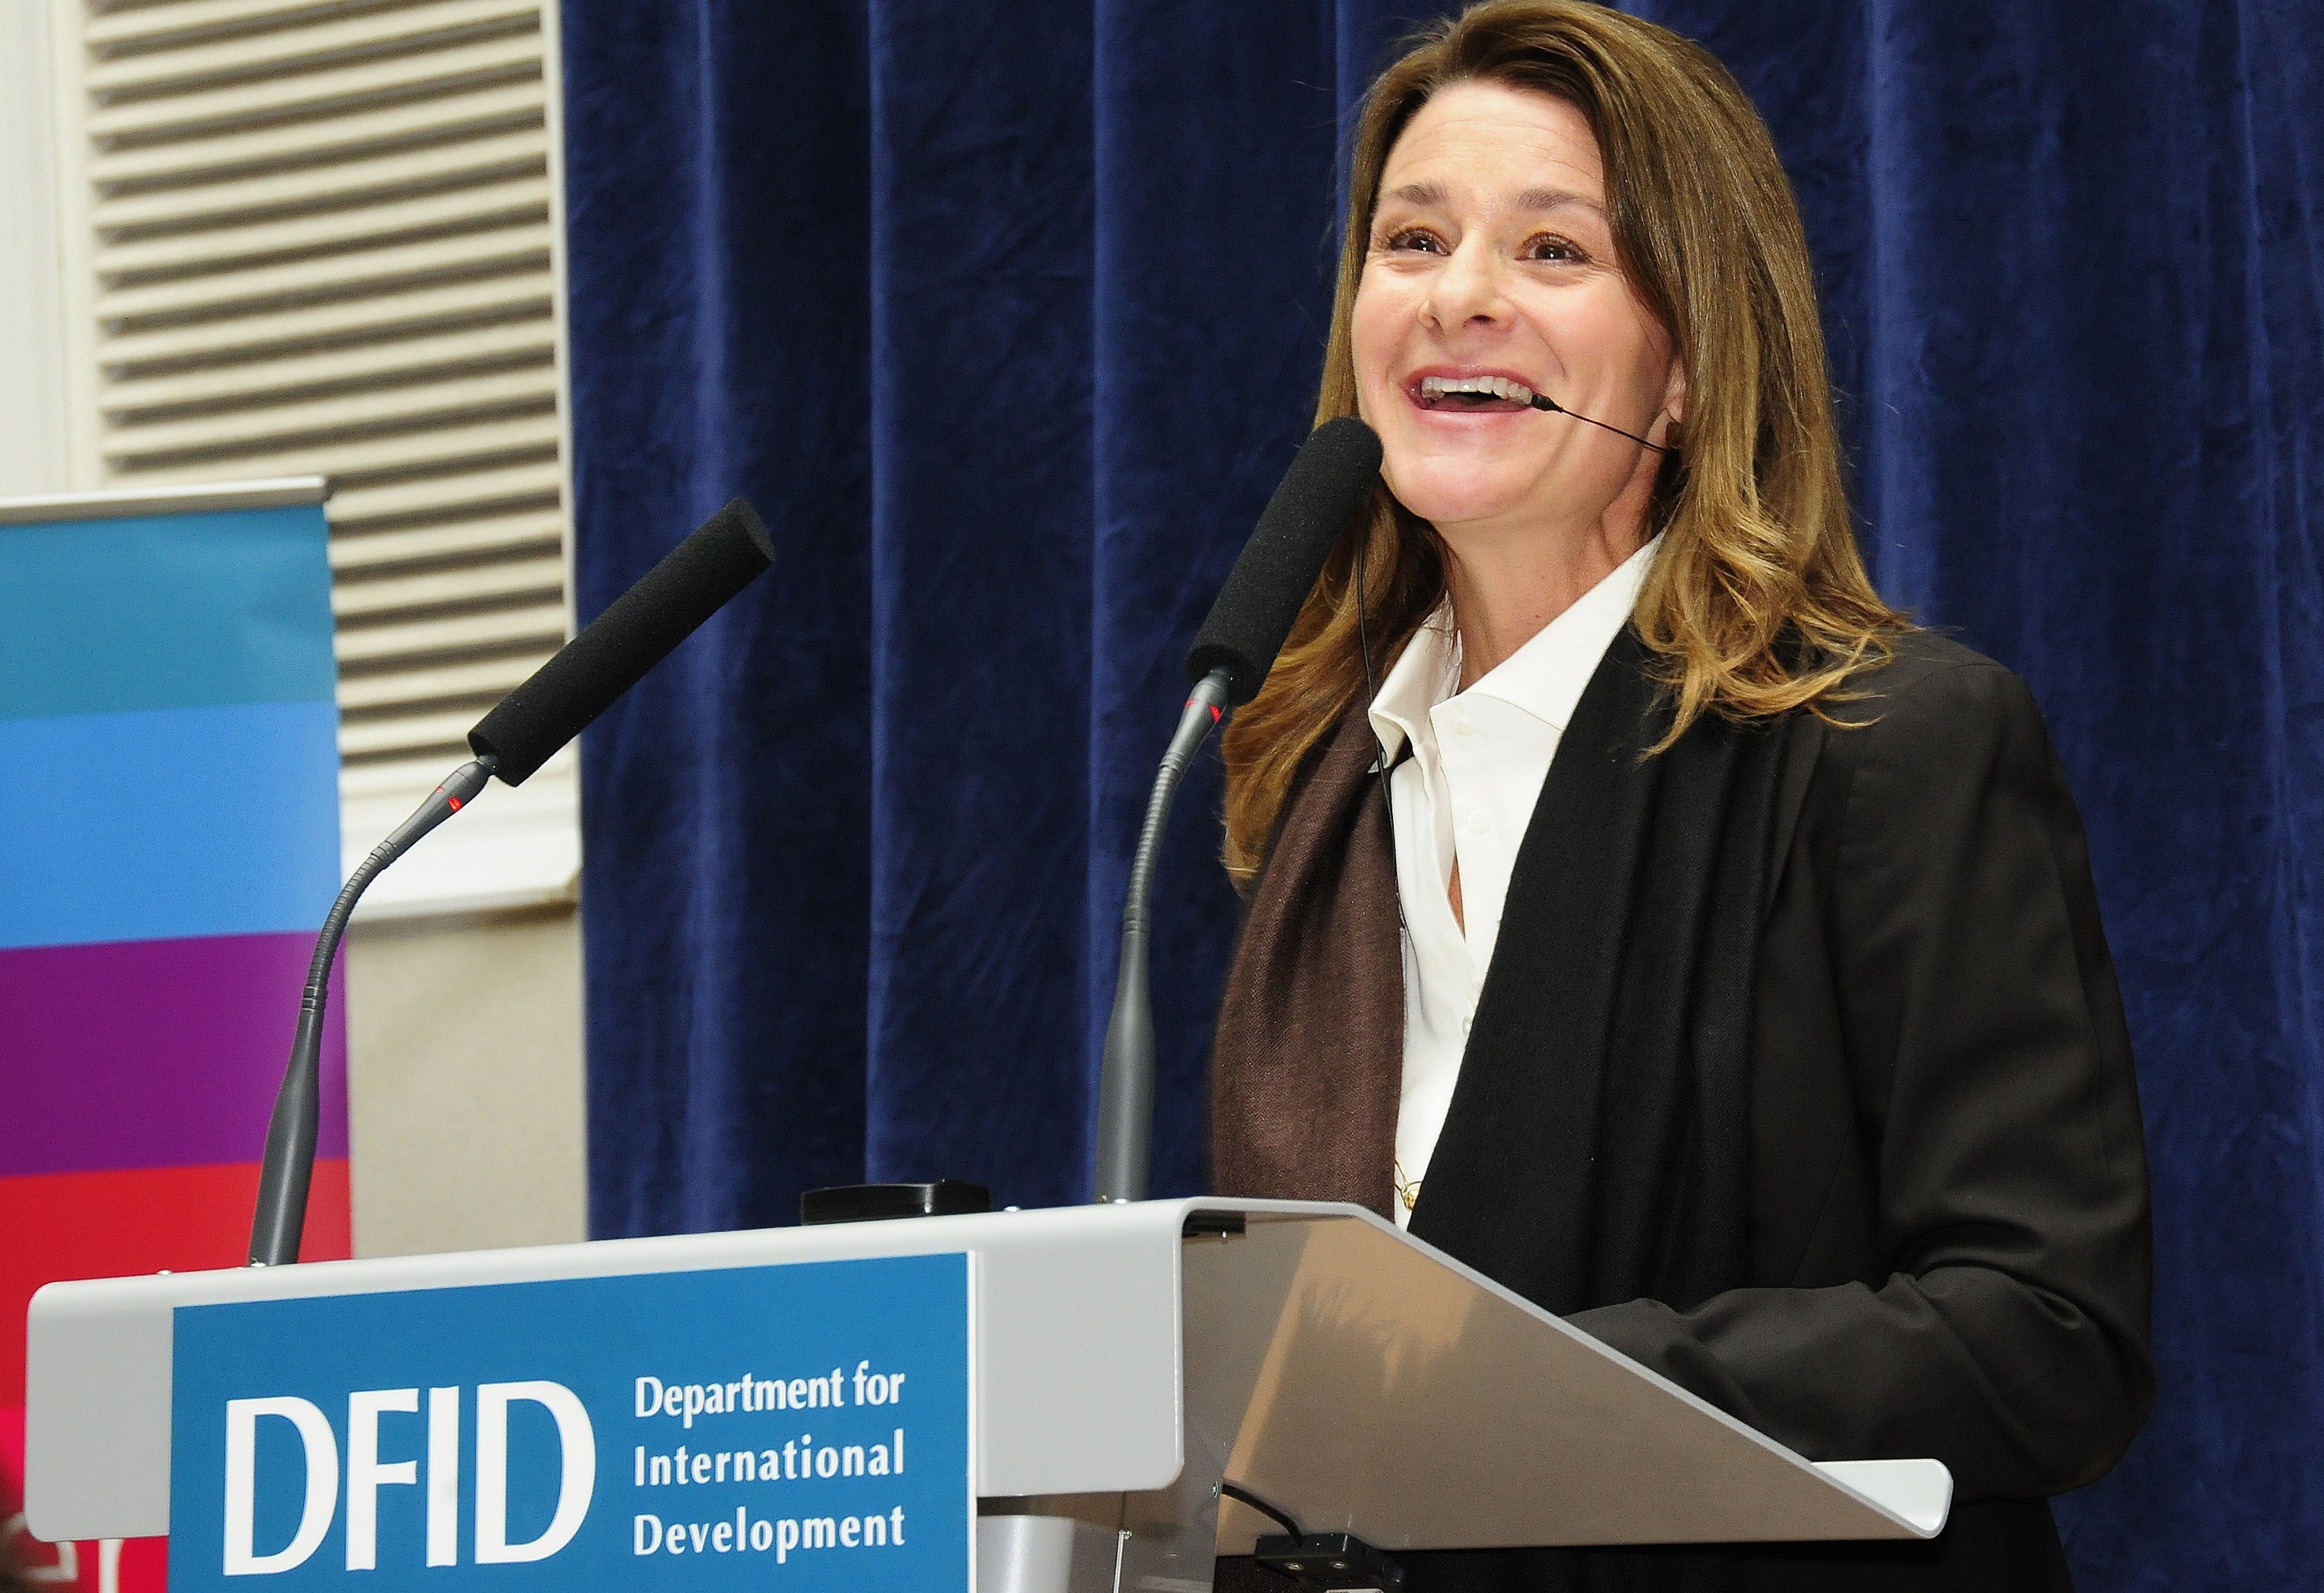 Melinda Gates' bold announcement unlocks nutrition funding